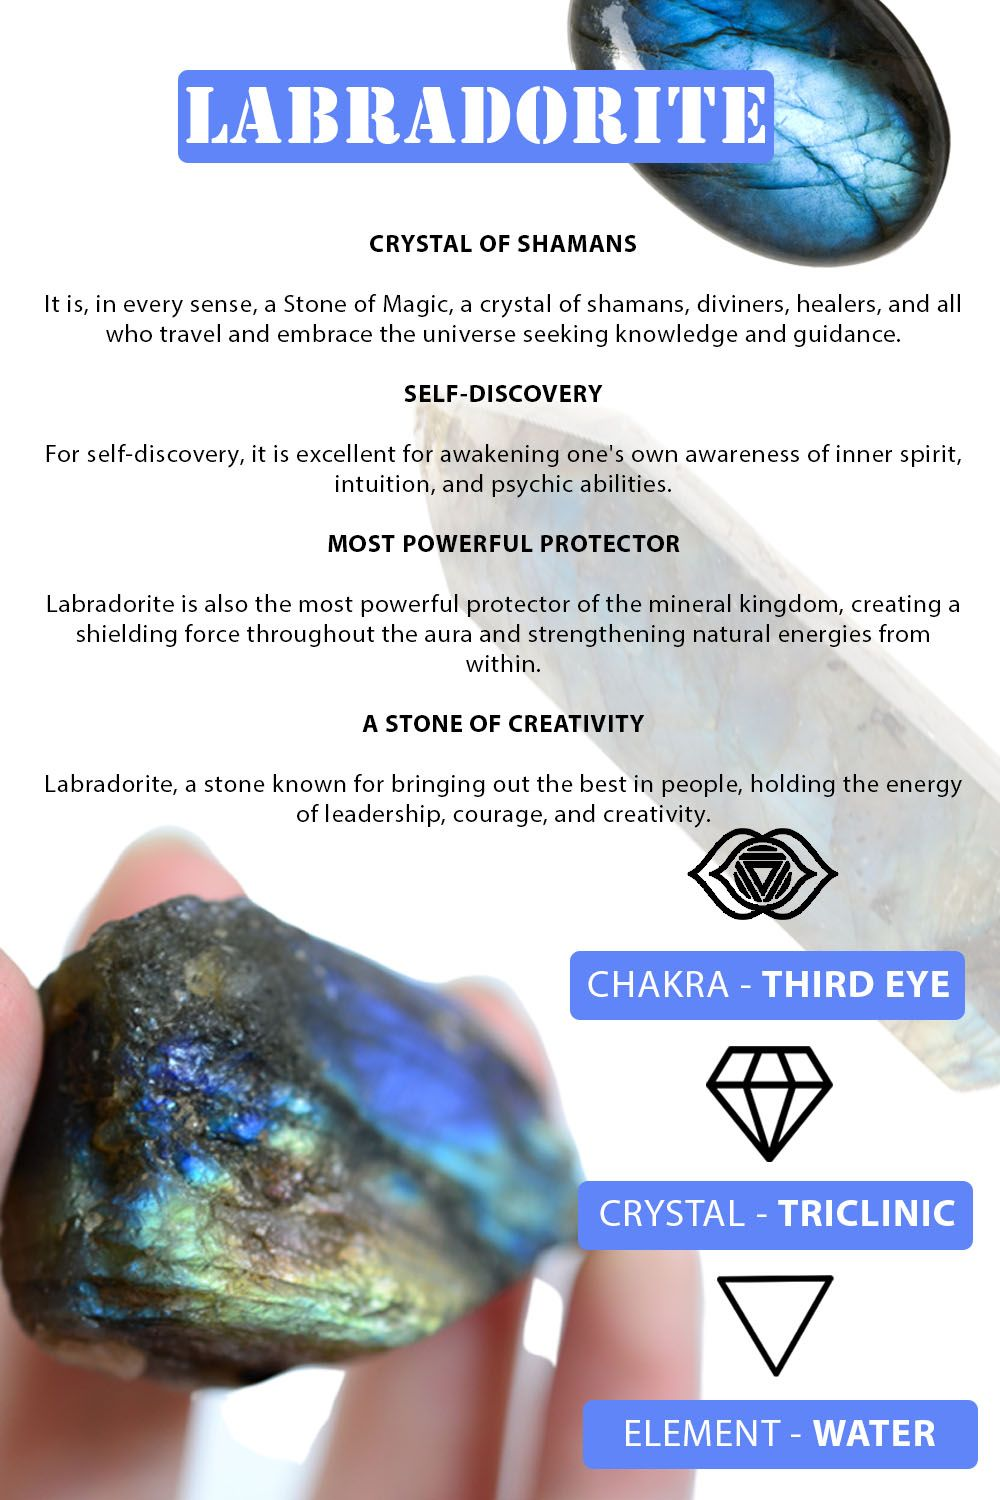 Labradorite Metaphysical Meaning And Spiritual Properties In 2020 Spiritual Crystals Crystal Healing Stones Chakra Crystals